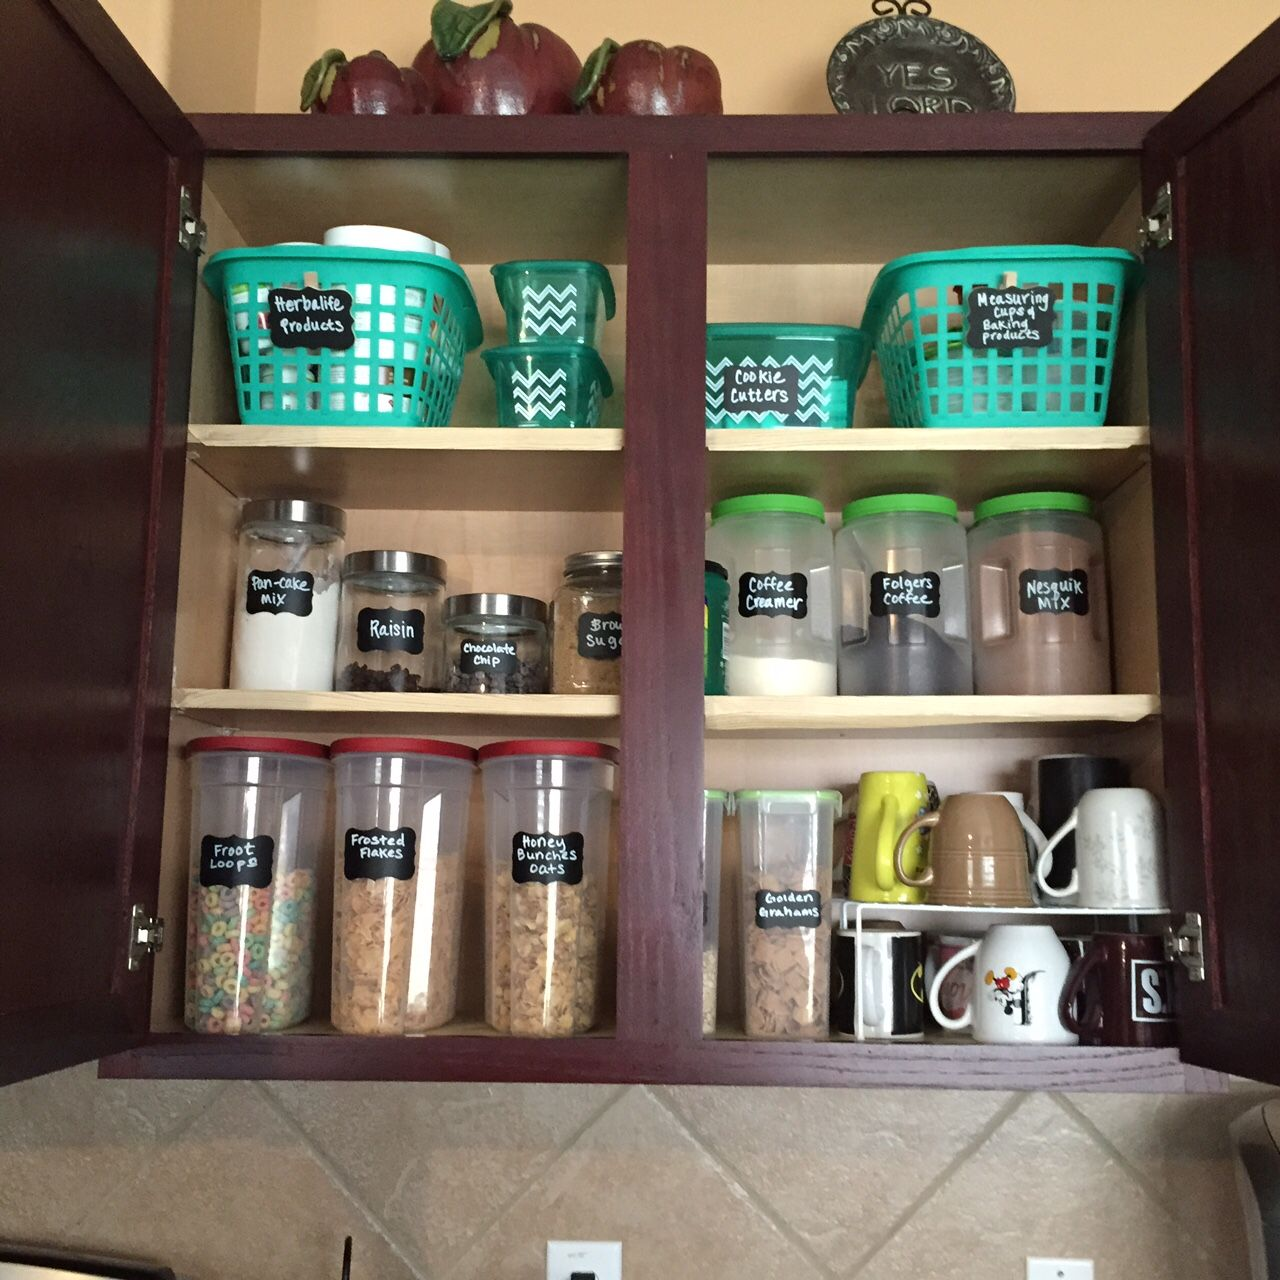 6 Ideas On How To Display Your Home Accessories: Ideas To Organize Your Kitchen Cabinet All From The Dollar